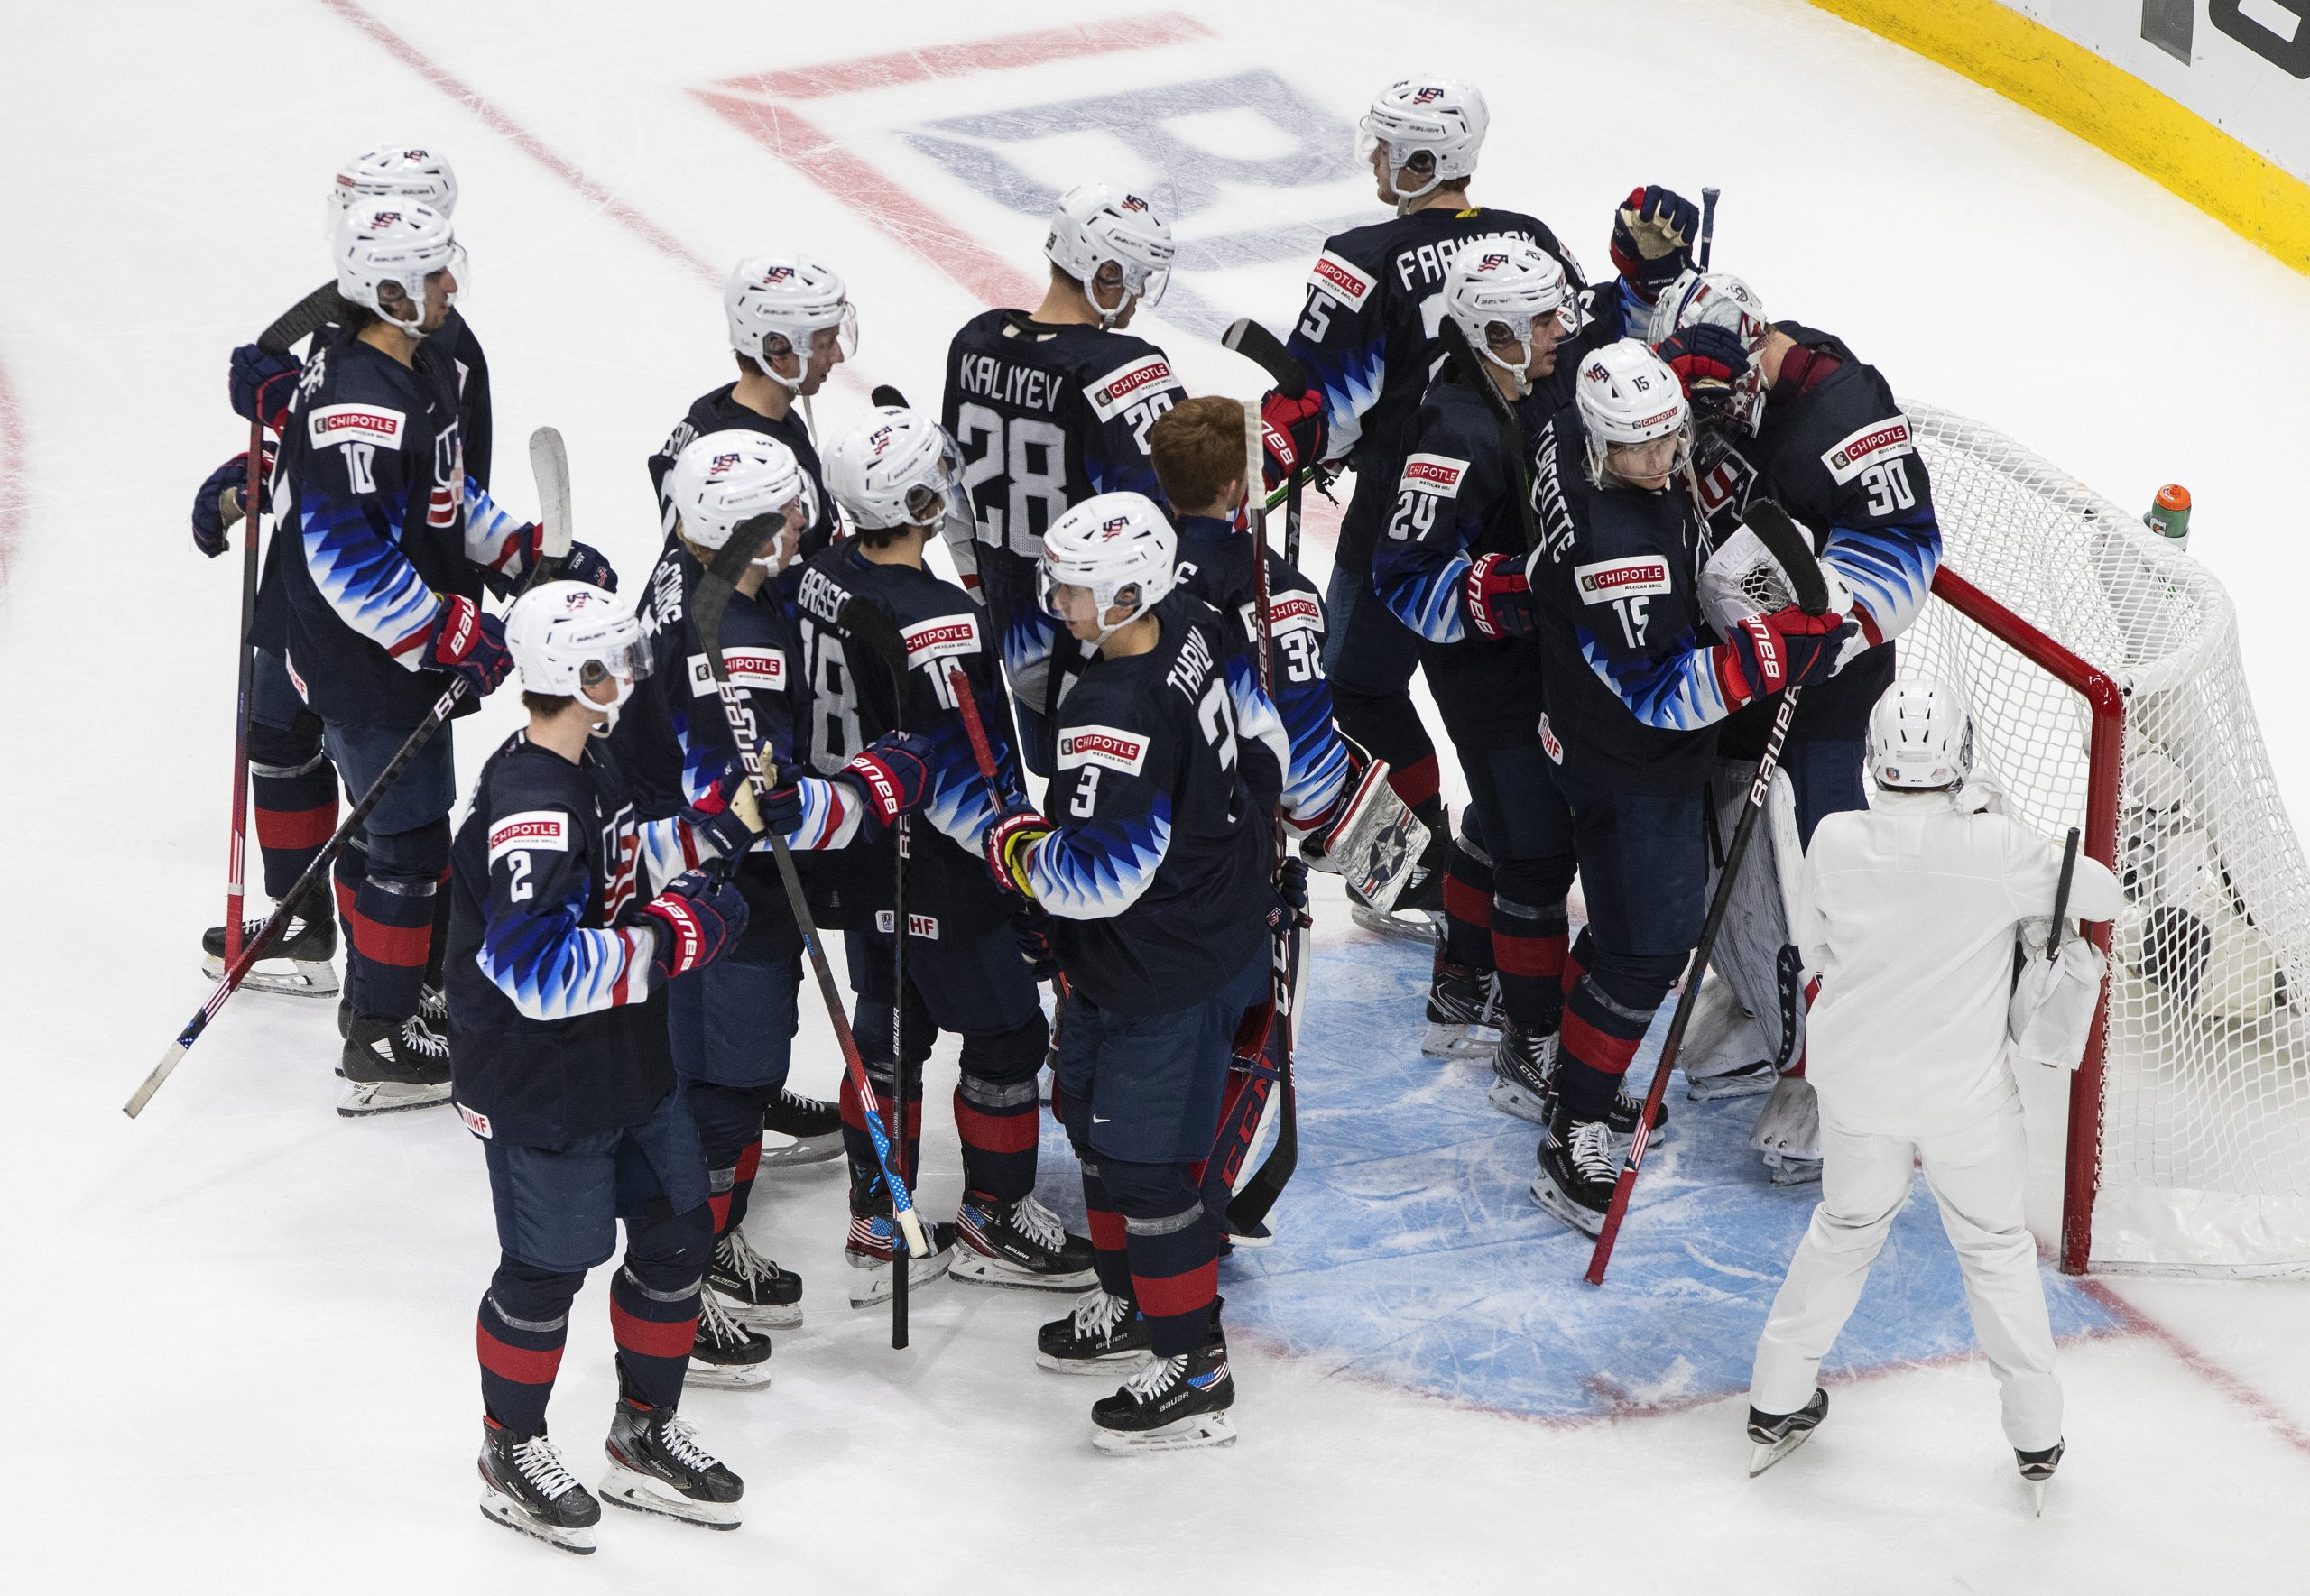 Canada Settles for Silver after Loss to the US at the WJHC